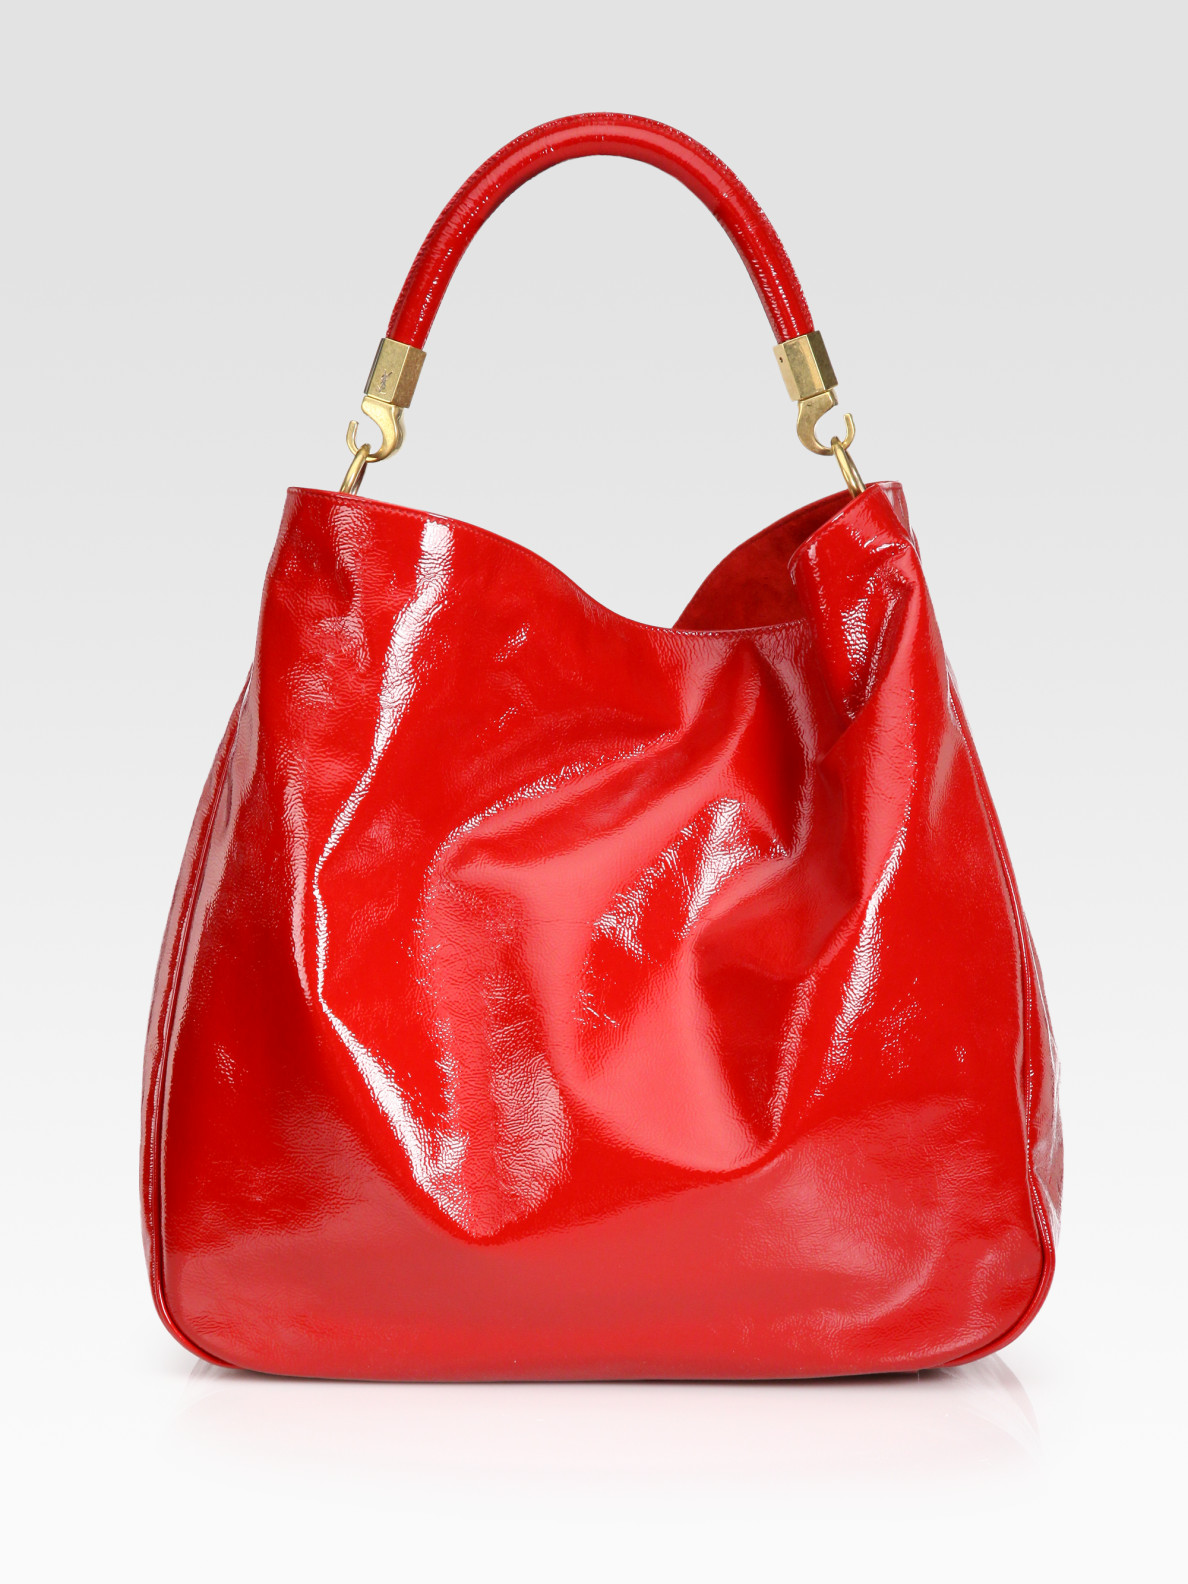 4d2ea0dbb7f Lyst - Saint Laurent Ysl Large Patent Leather Roady Hobo in Red